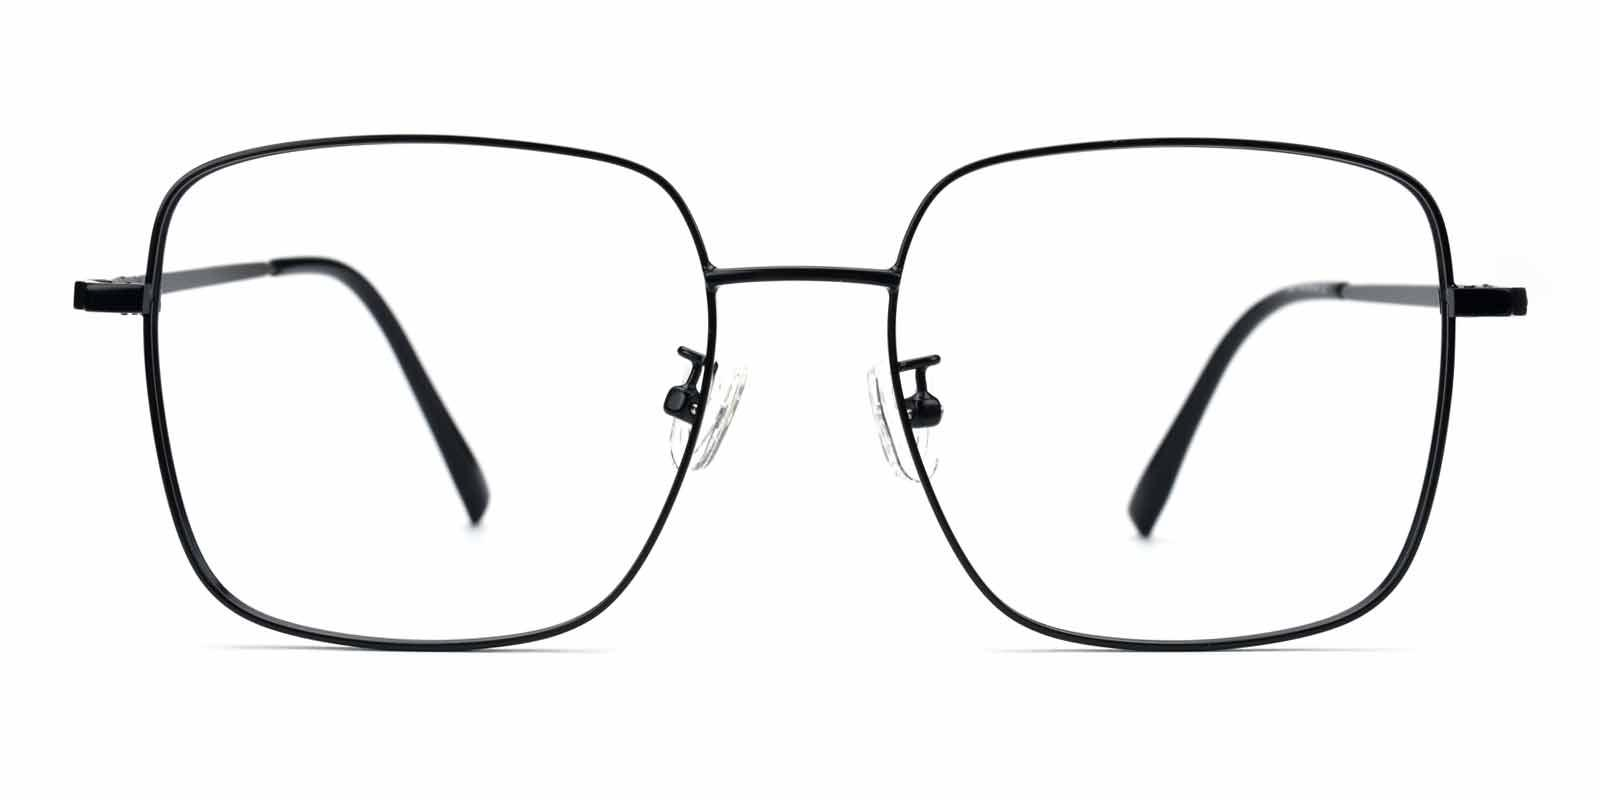 Kelly-Black-Square-Metal-Eyeglasses-detail